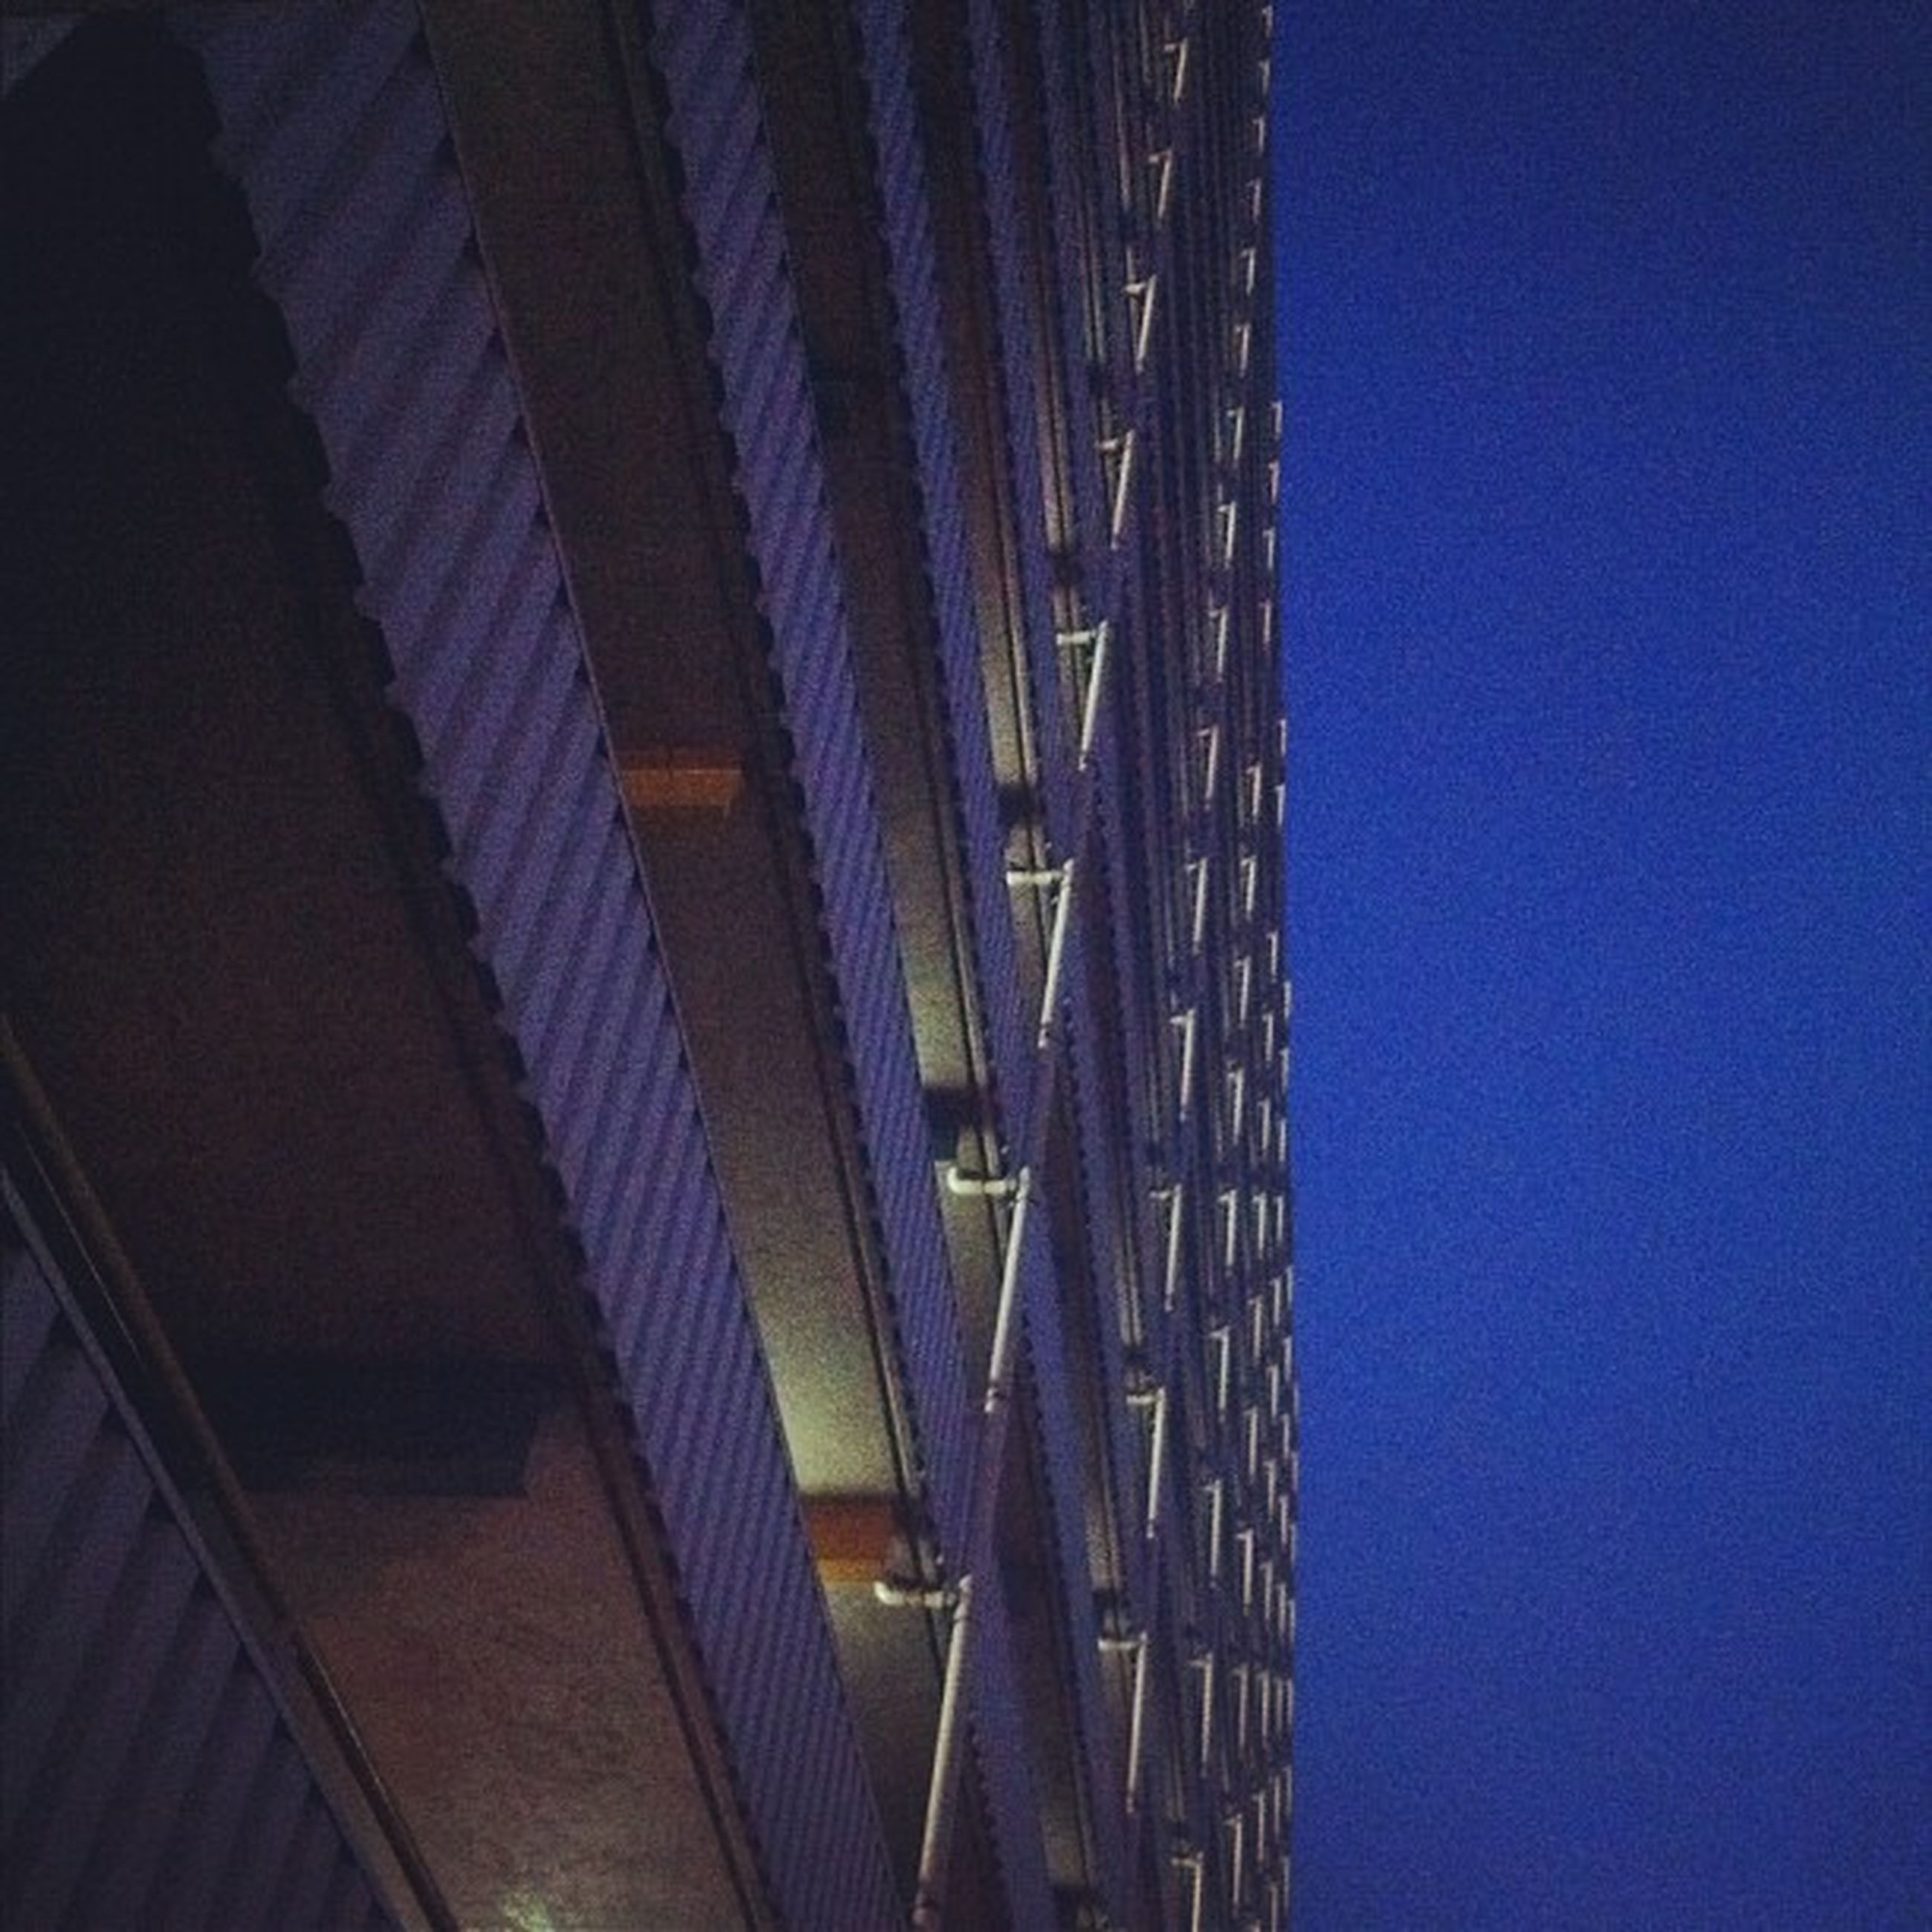 architecture, built structure, low angle view, blue, connection, clear sky, building exterior, bridge - man made structure, illuminated, night, engineering, sky, city, copy space, transportation, outdoors, no people, building, modern, dusk